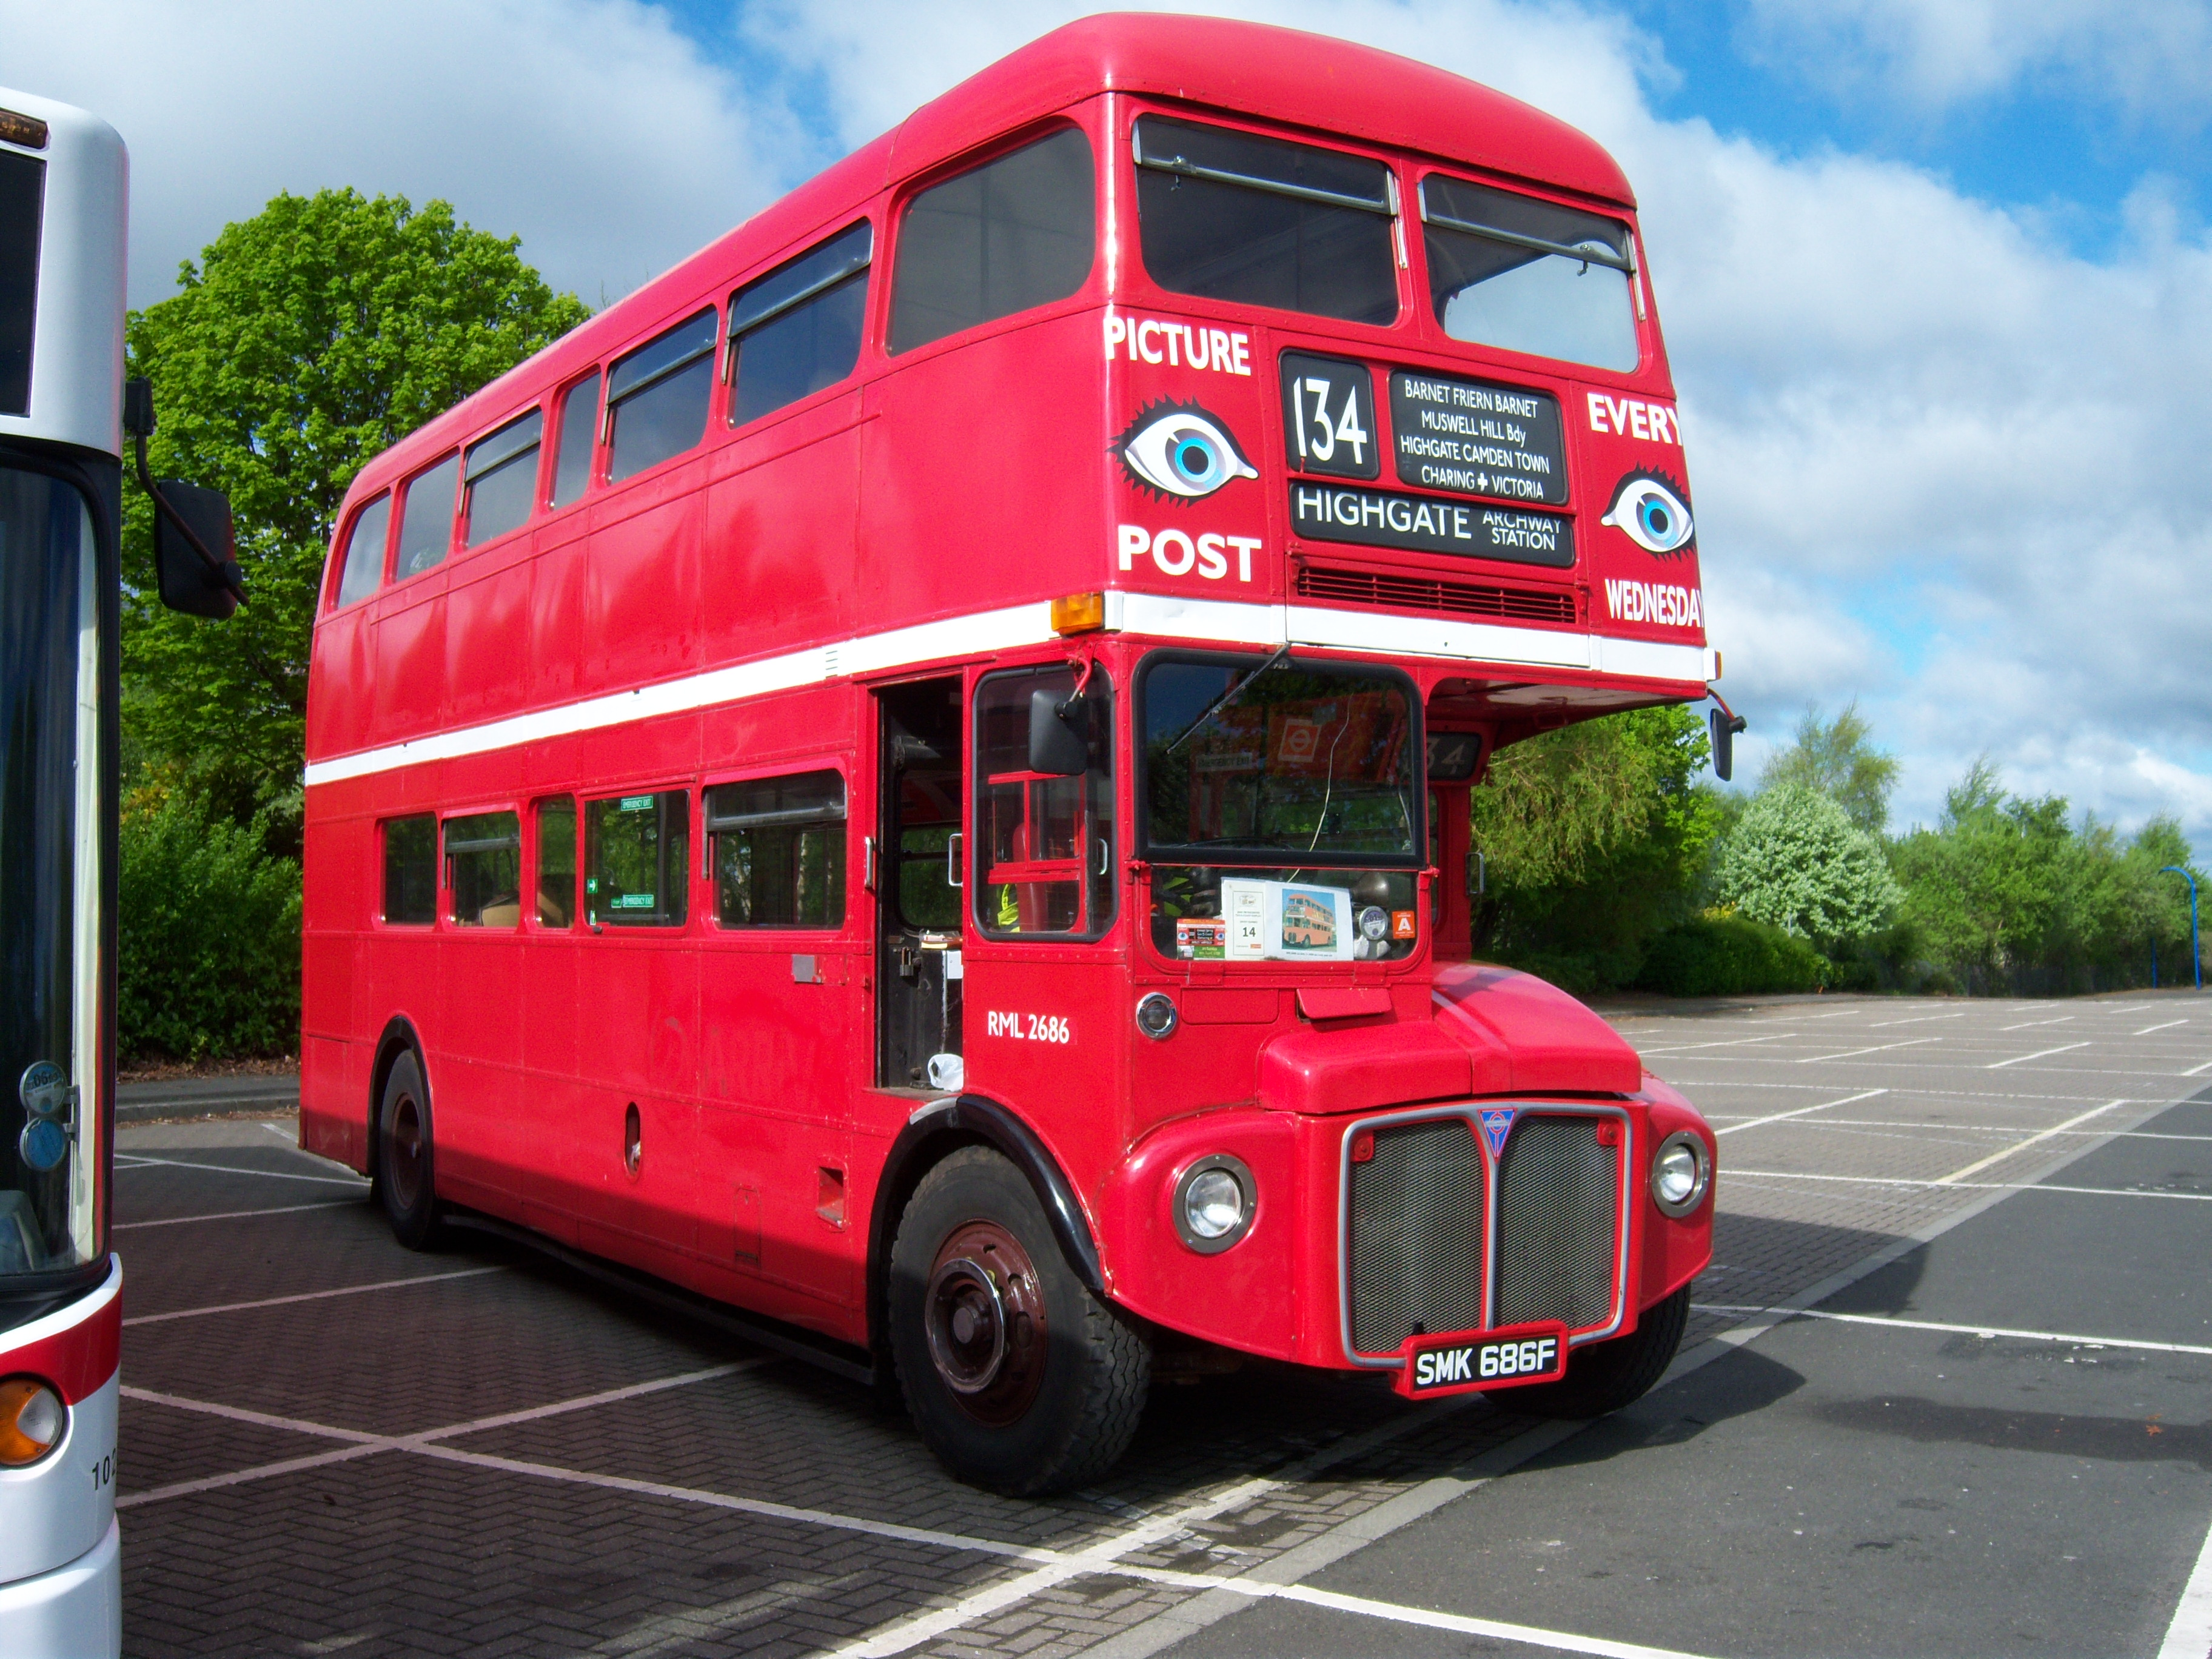 File:Routemaster bus RML 2686 Routemaster 50 livery SMK 686F Metrocentre  rally 2009 pic 3